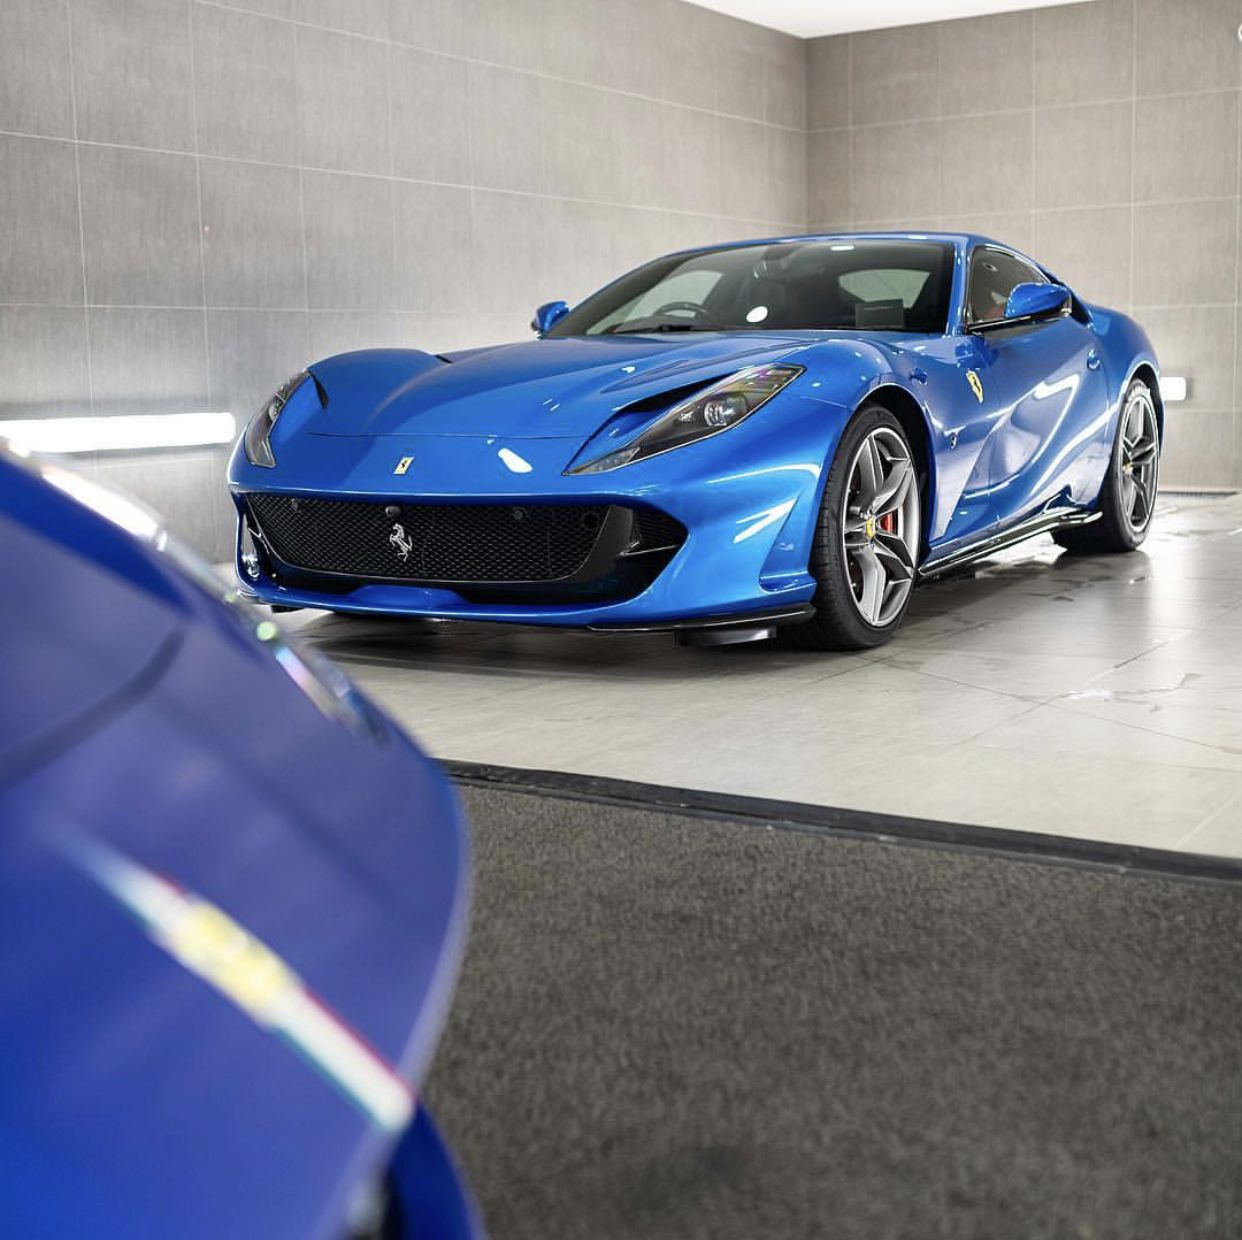 Ferrari 812 Superfast: Ferrari 812 Superfast Painted In Blu Corsa Photo Taken By